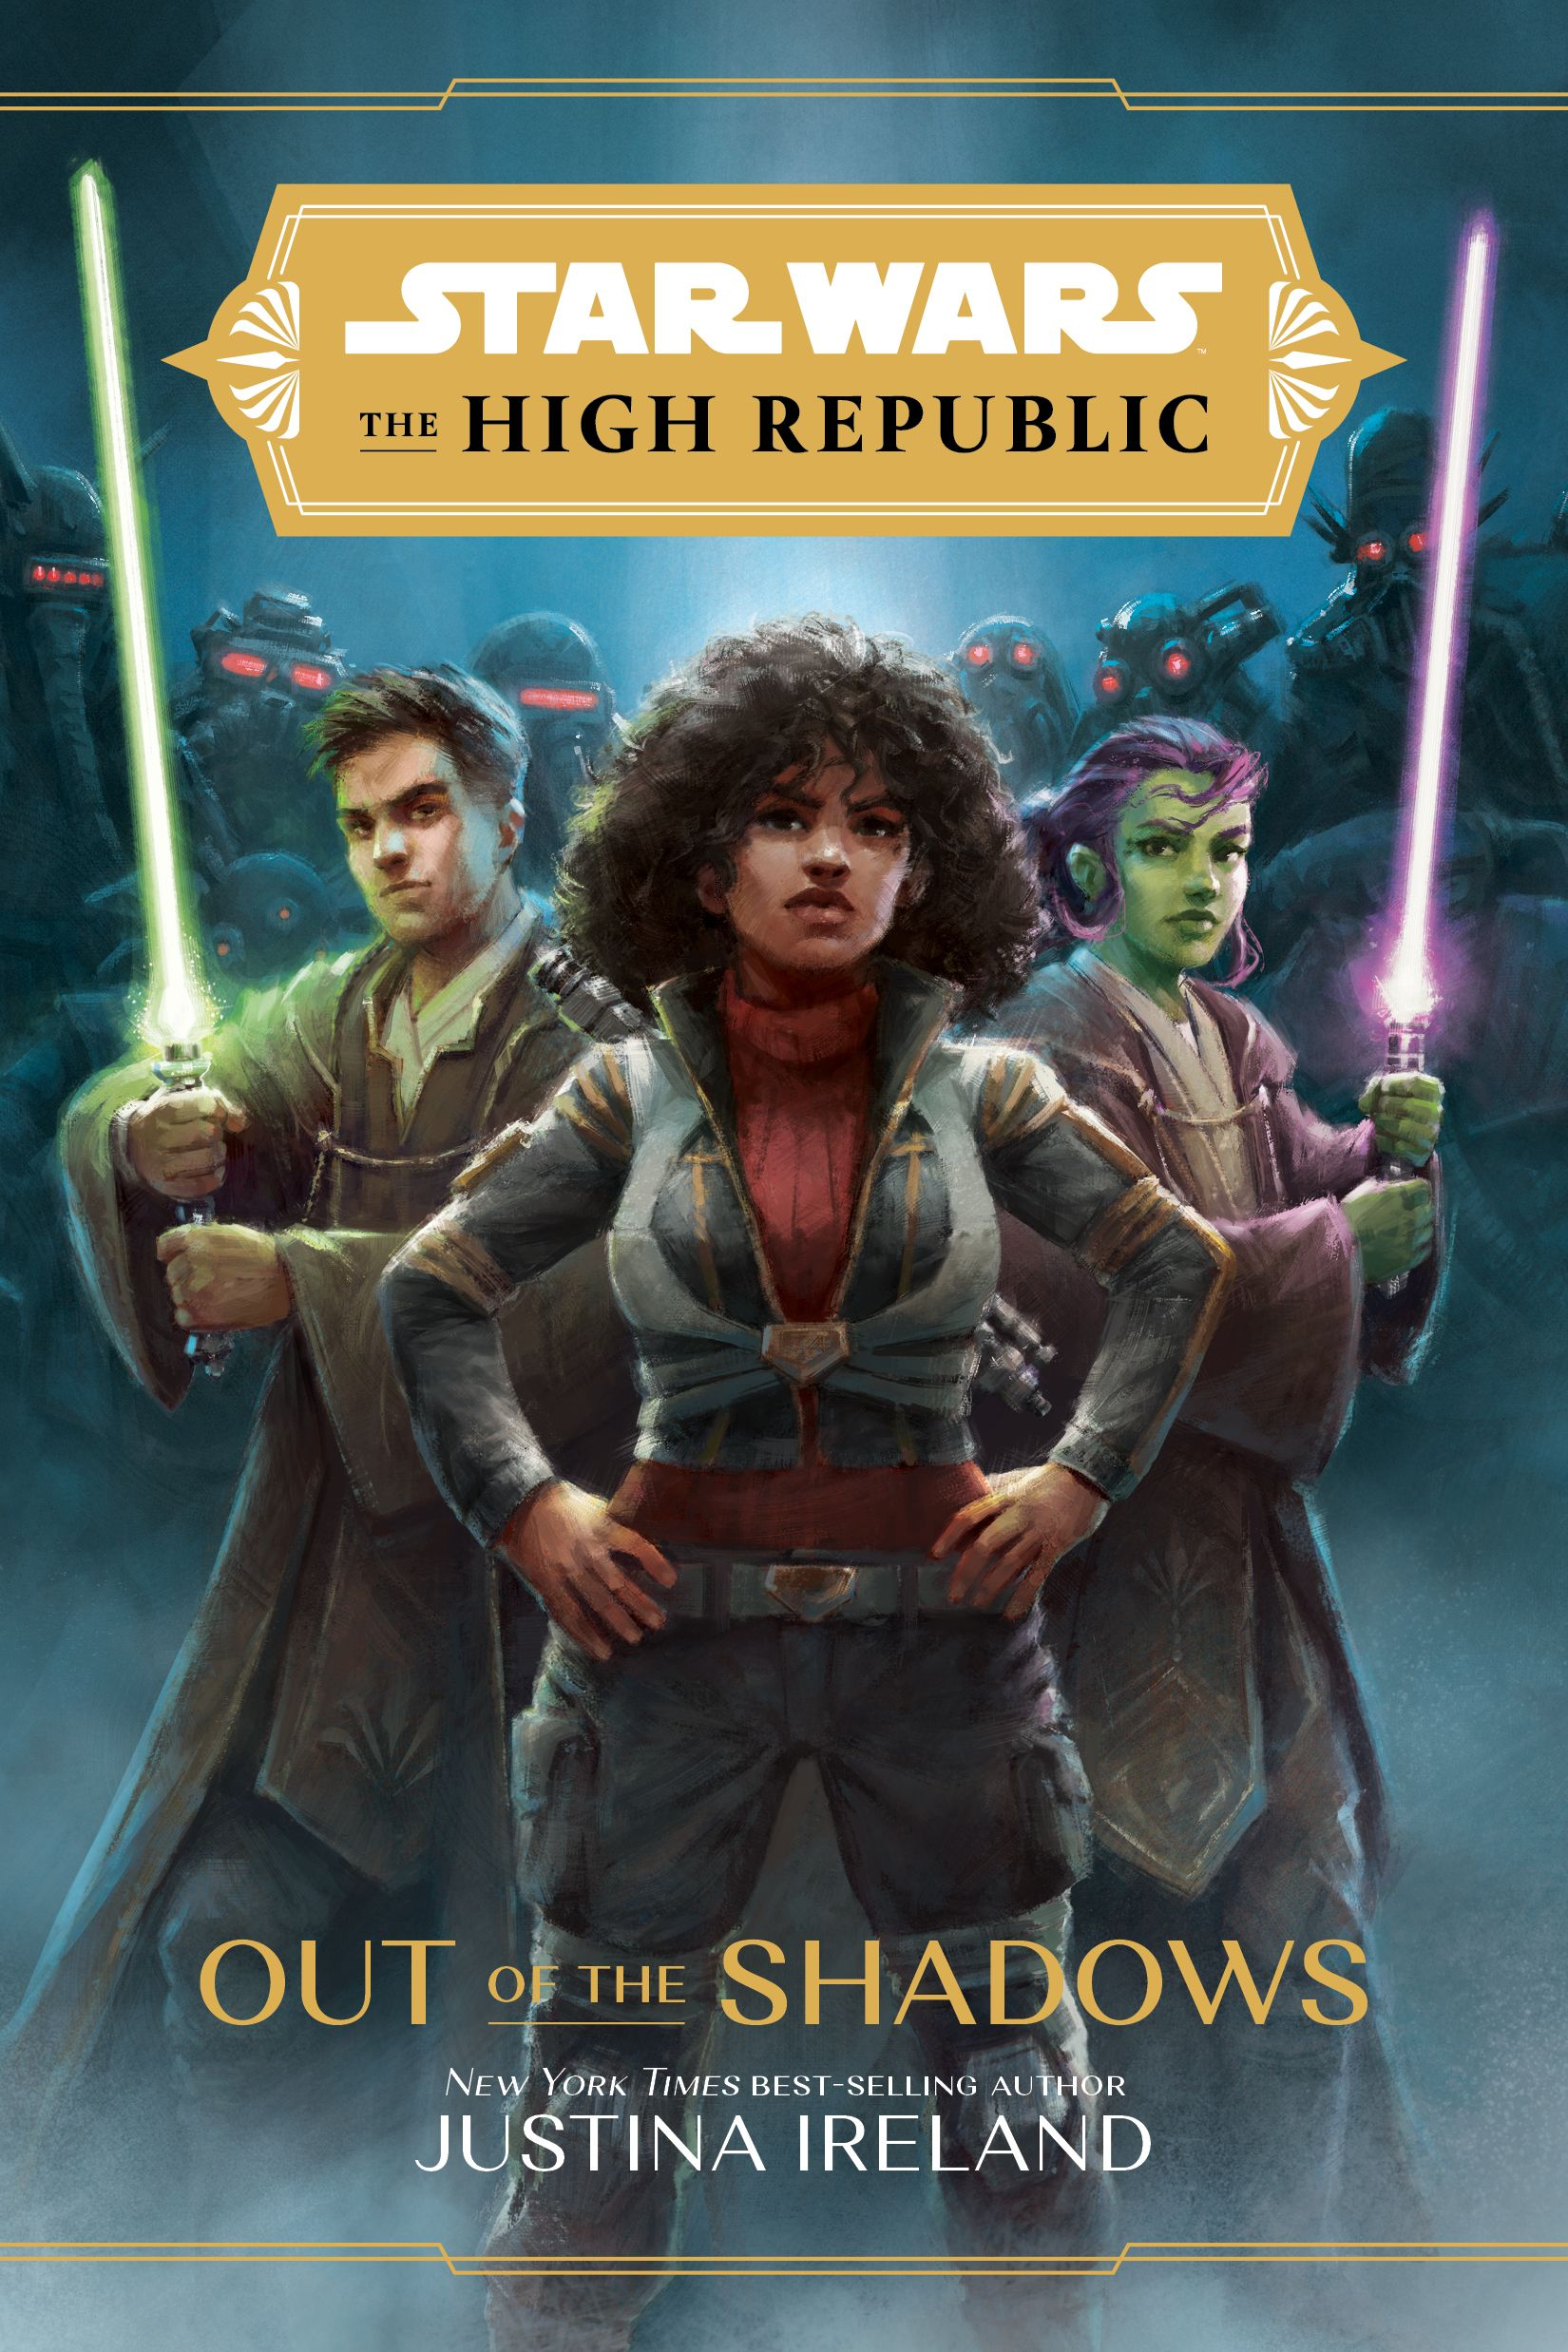 The High Republic: Out of the Shadows main cover